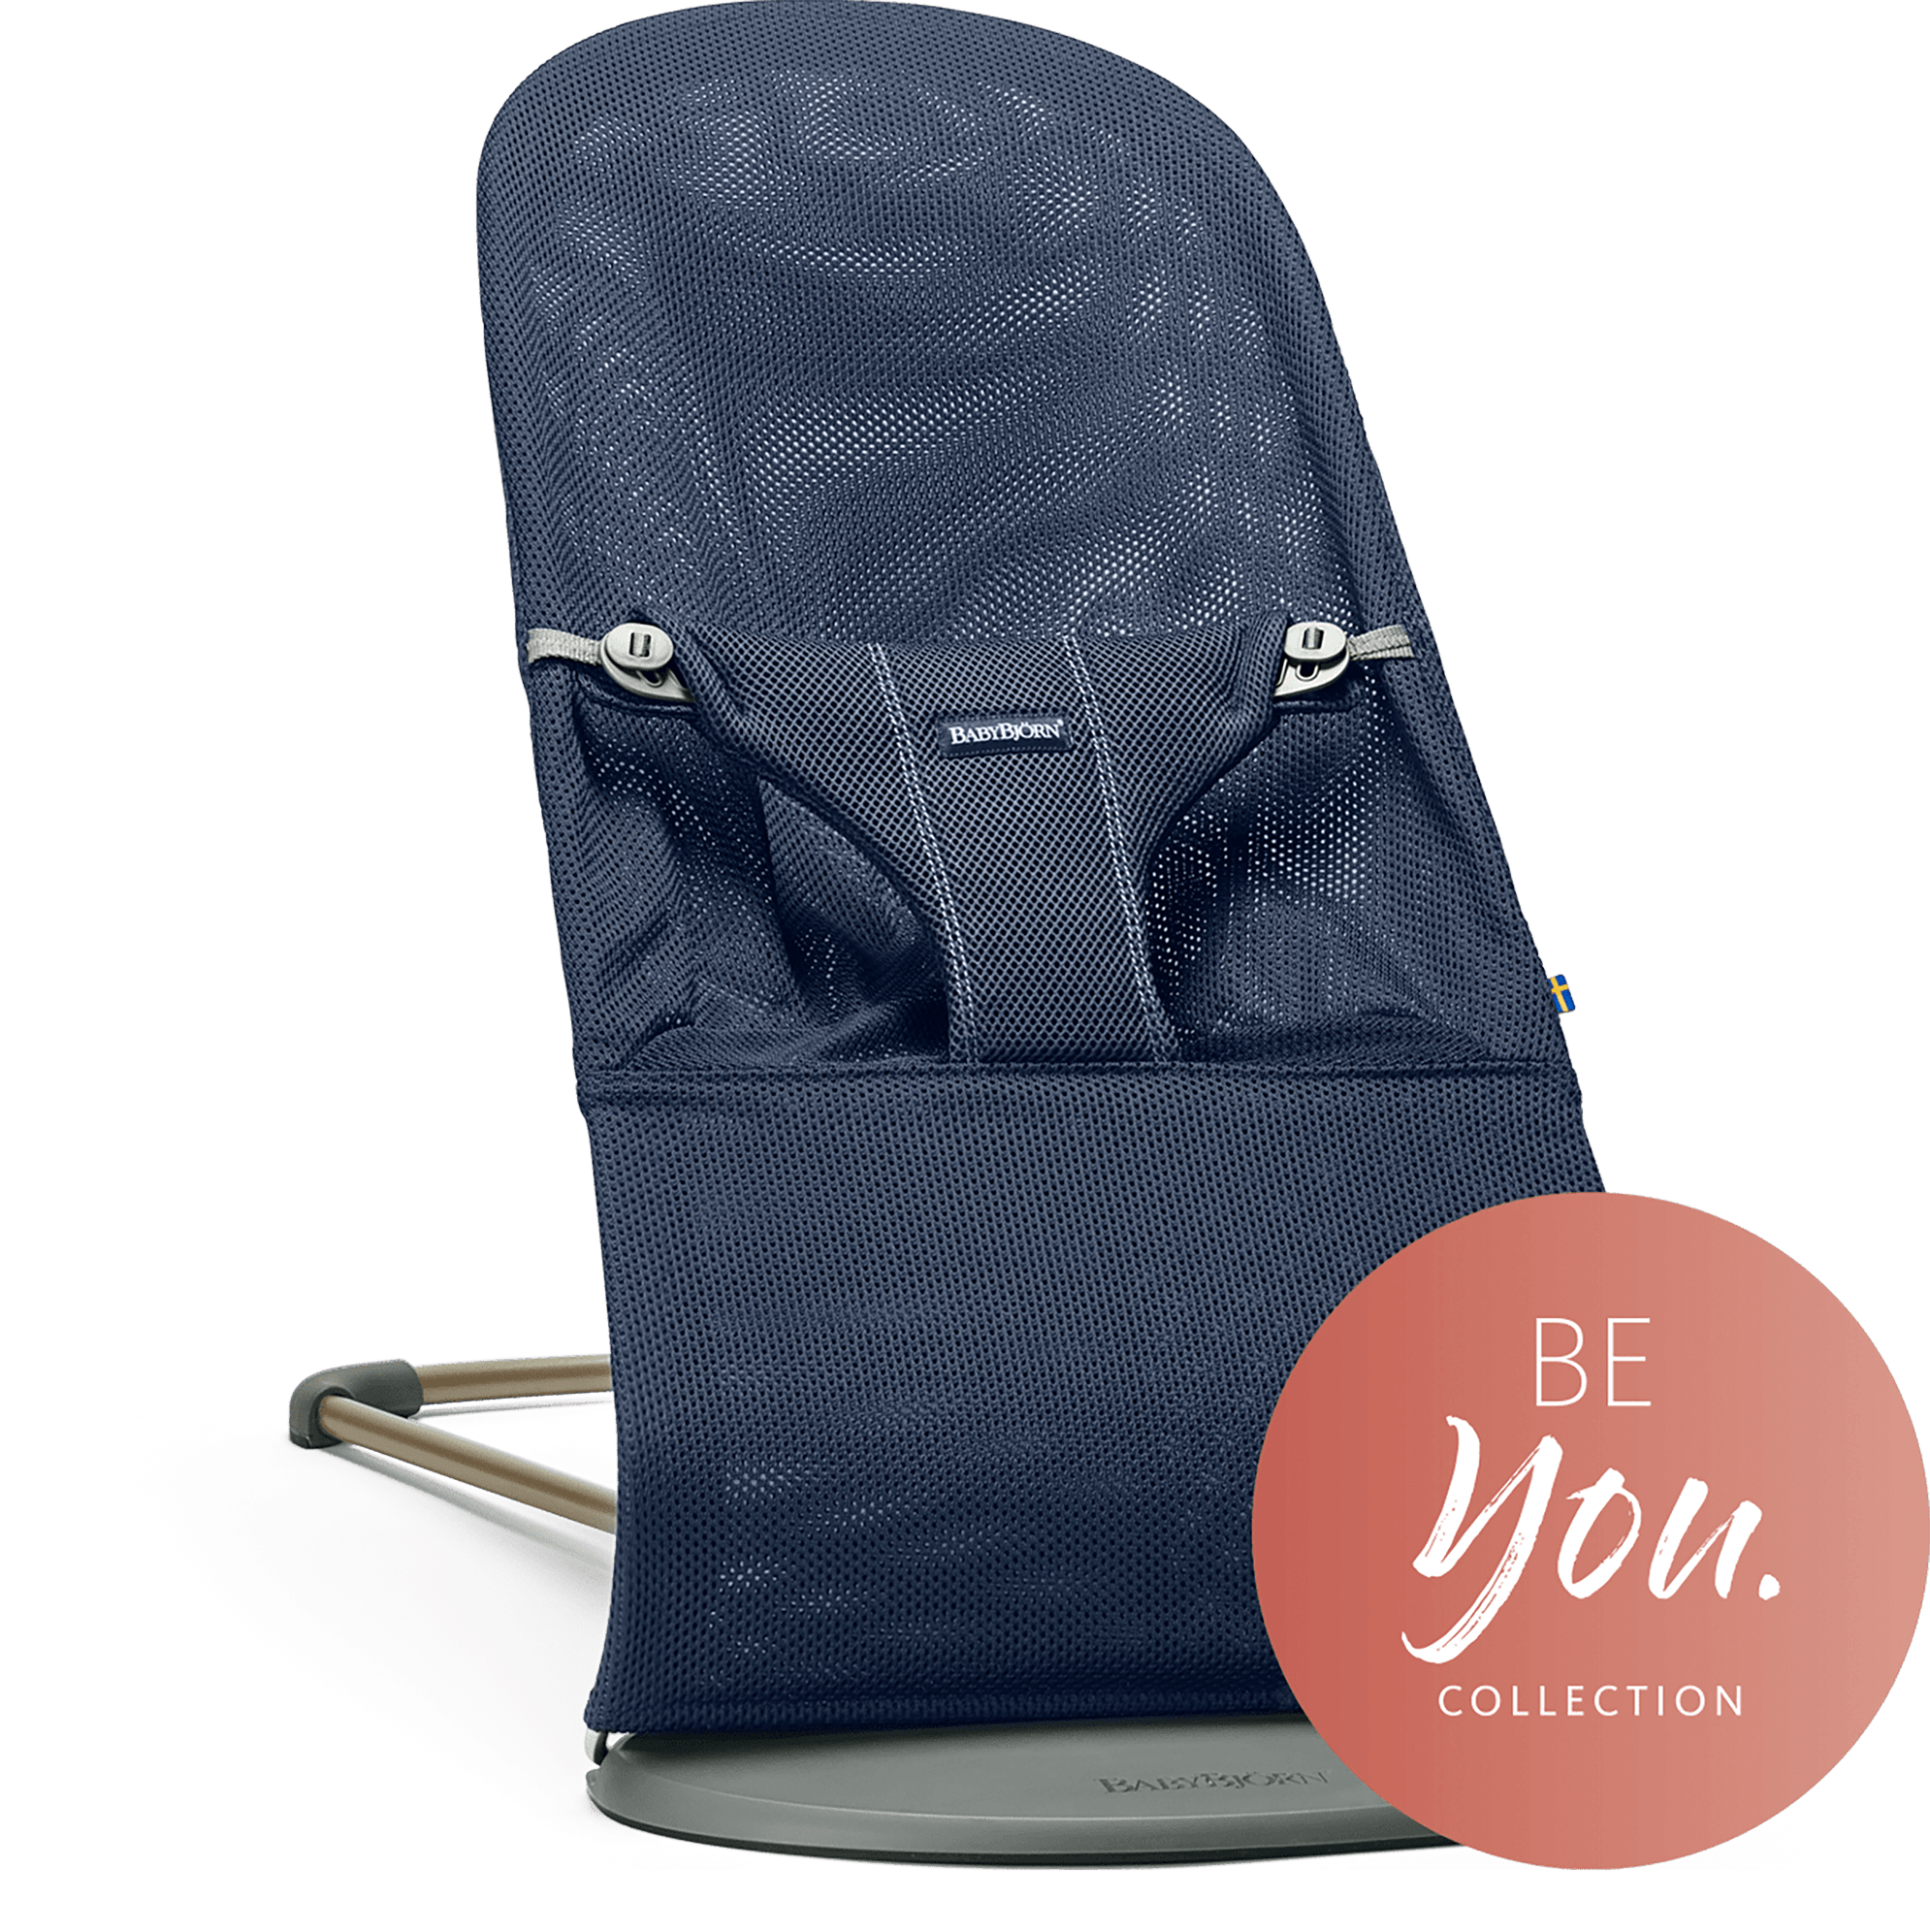 BABYBJÖRN Babysitter Bliss - Be You Collection Mesh